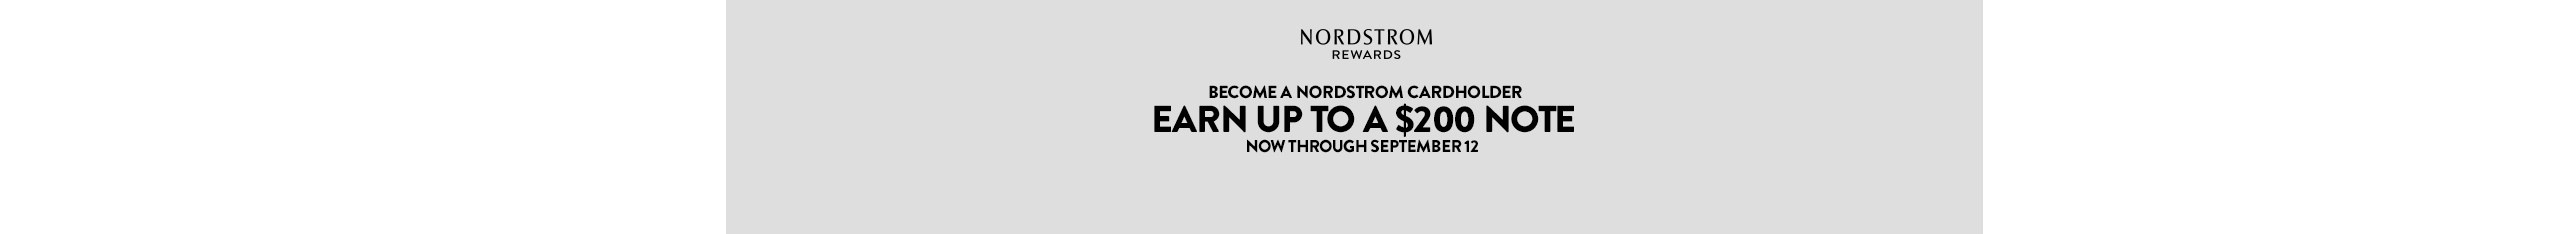 Become a Nordstrom cardholder, earn up to a $200 note now through September 12.